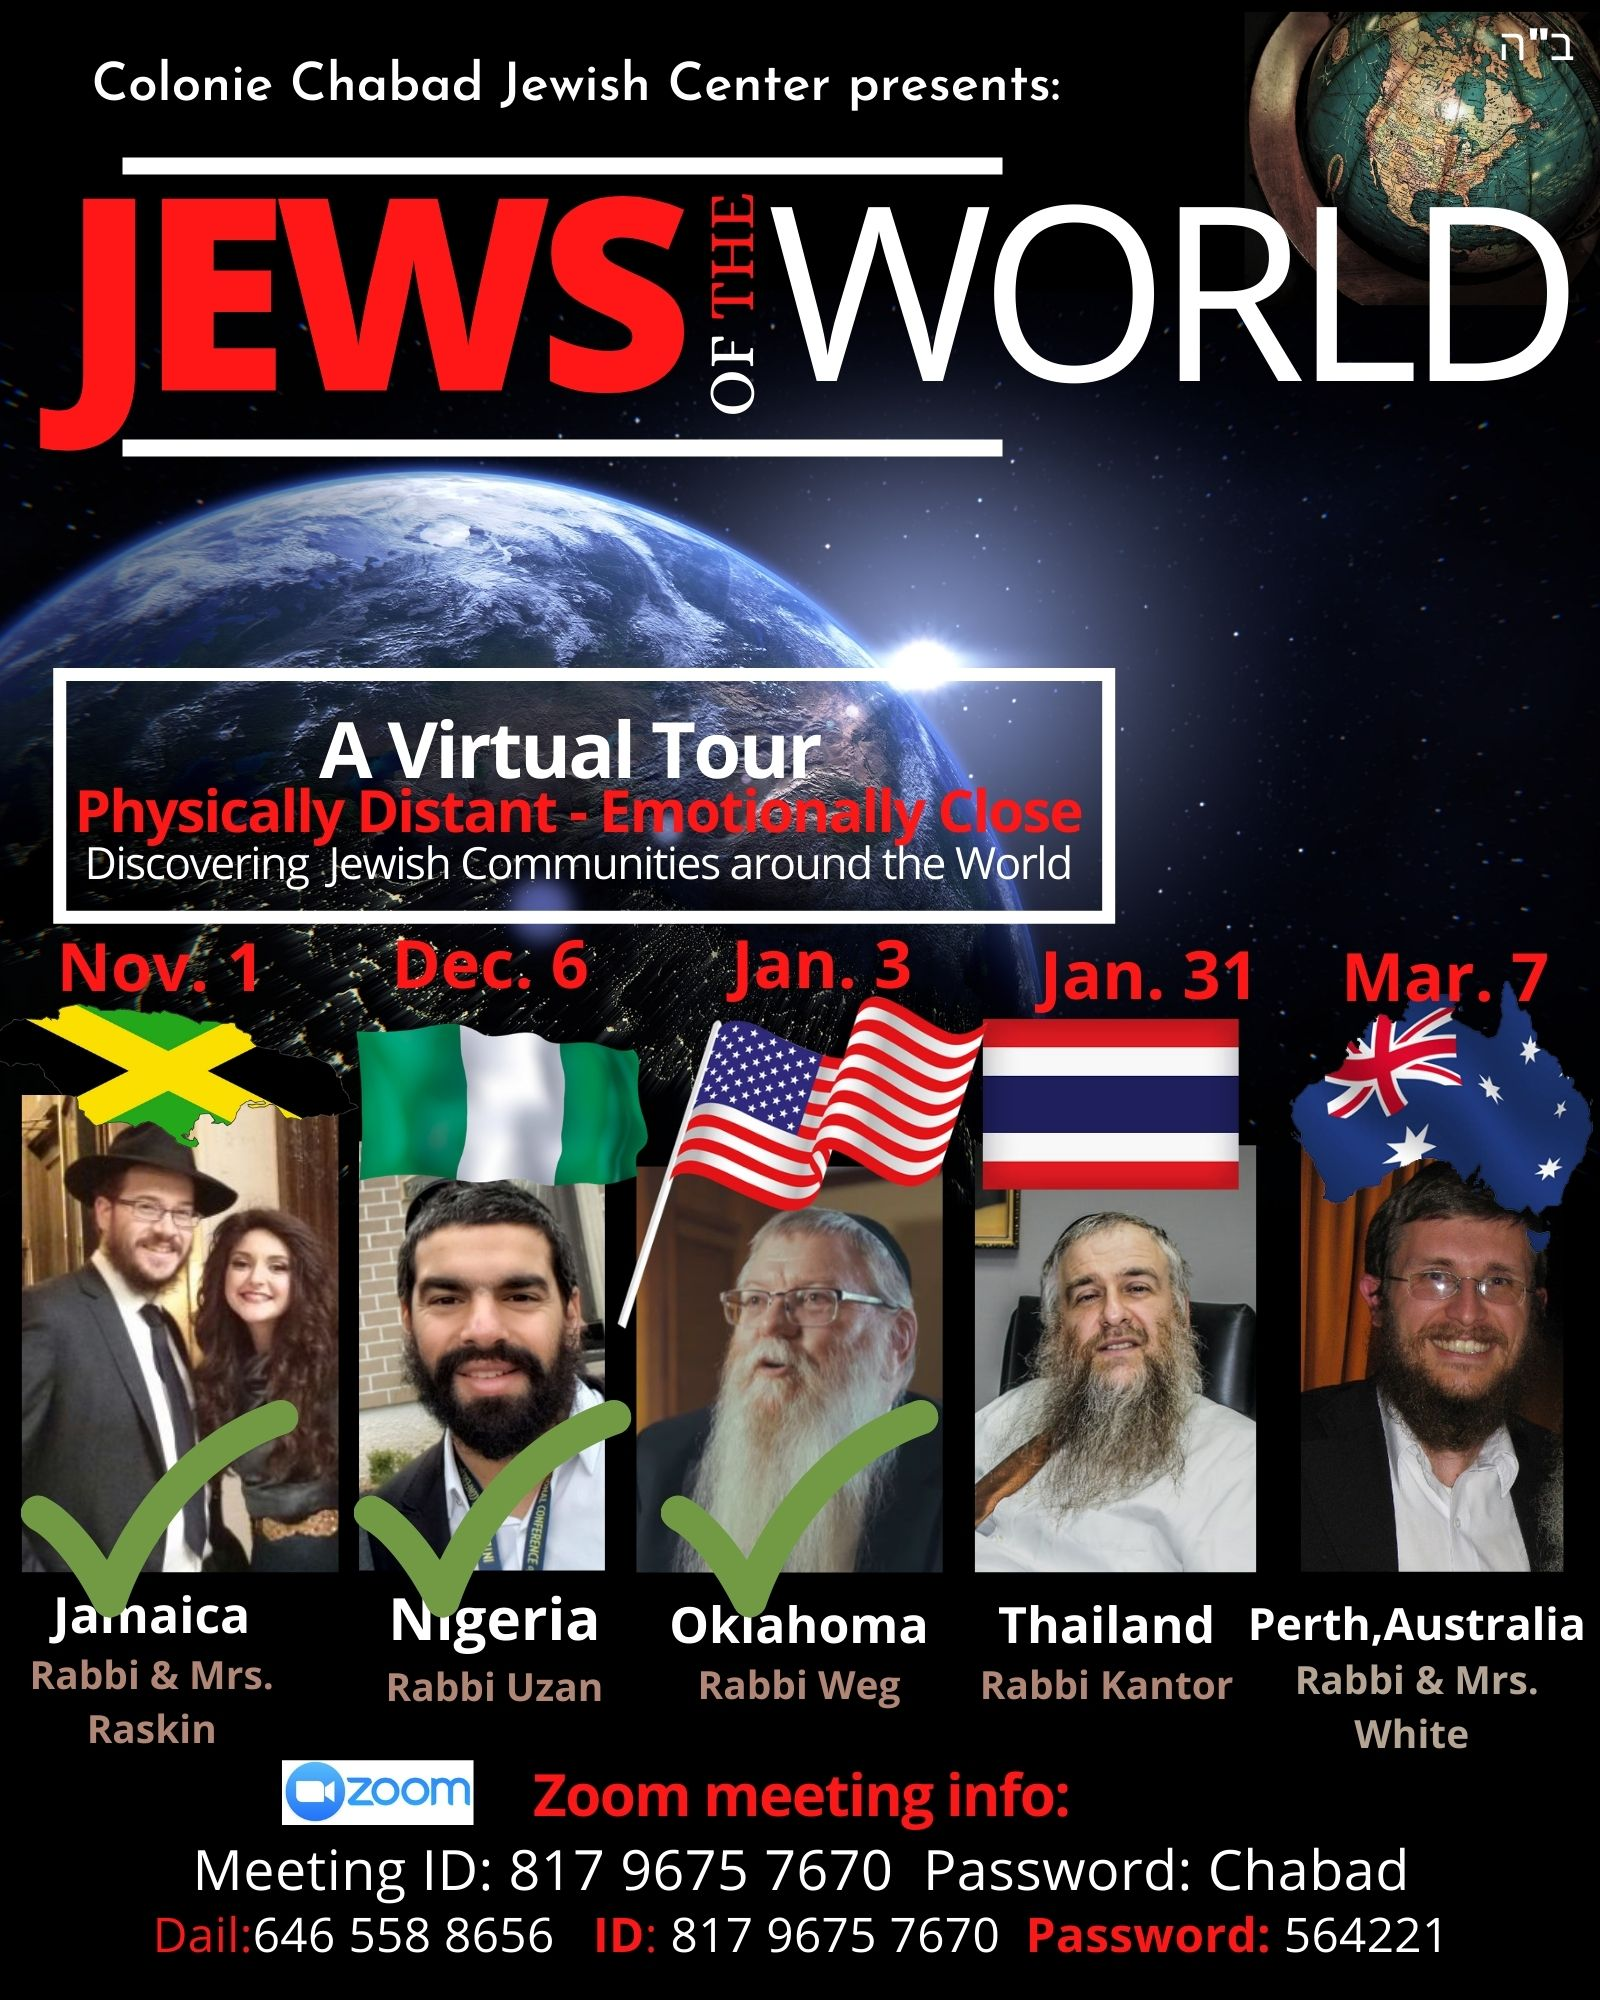 Jews of the World